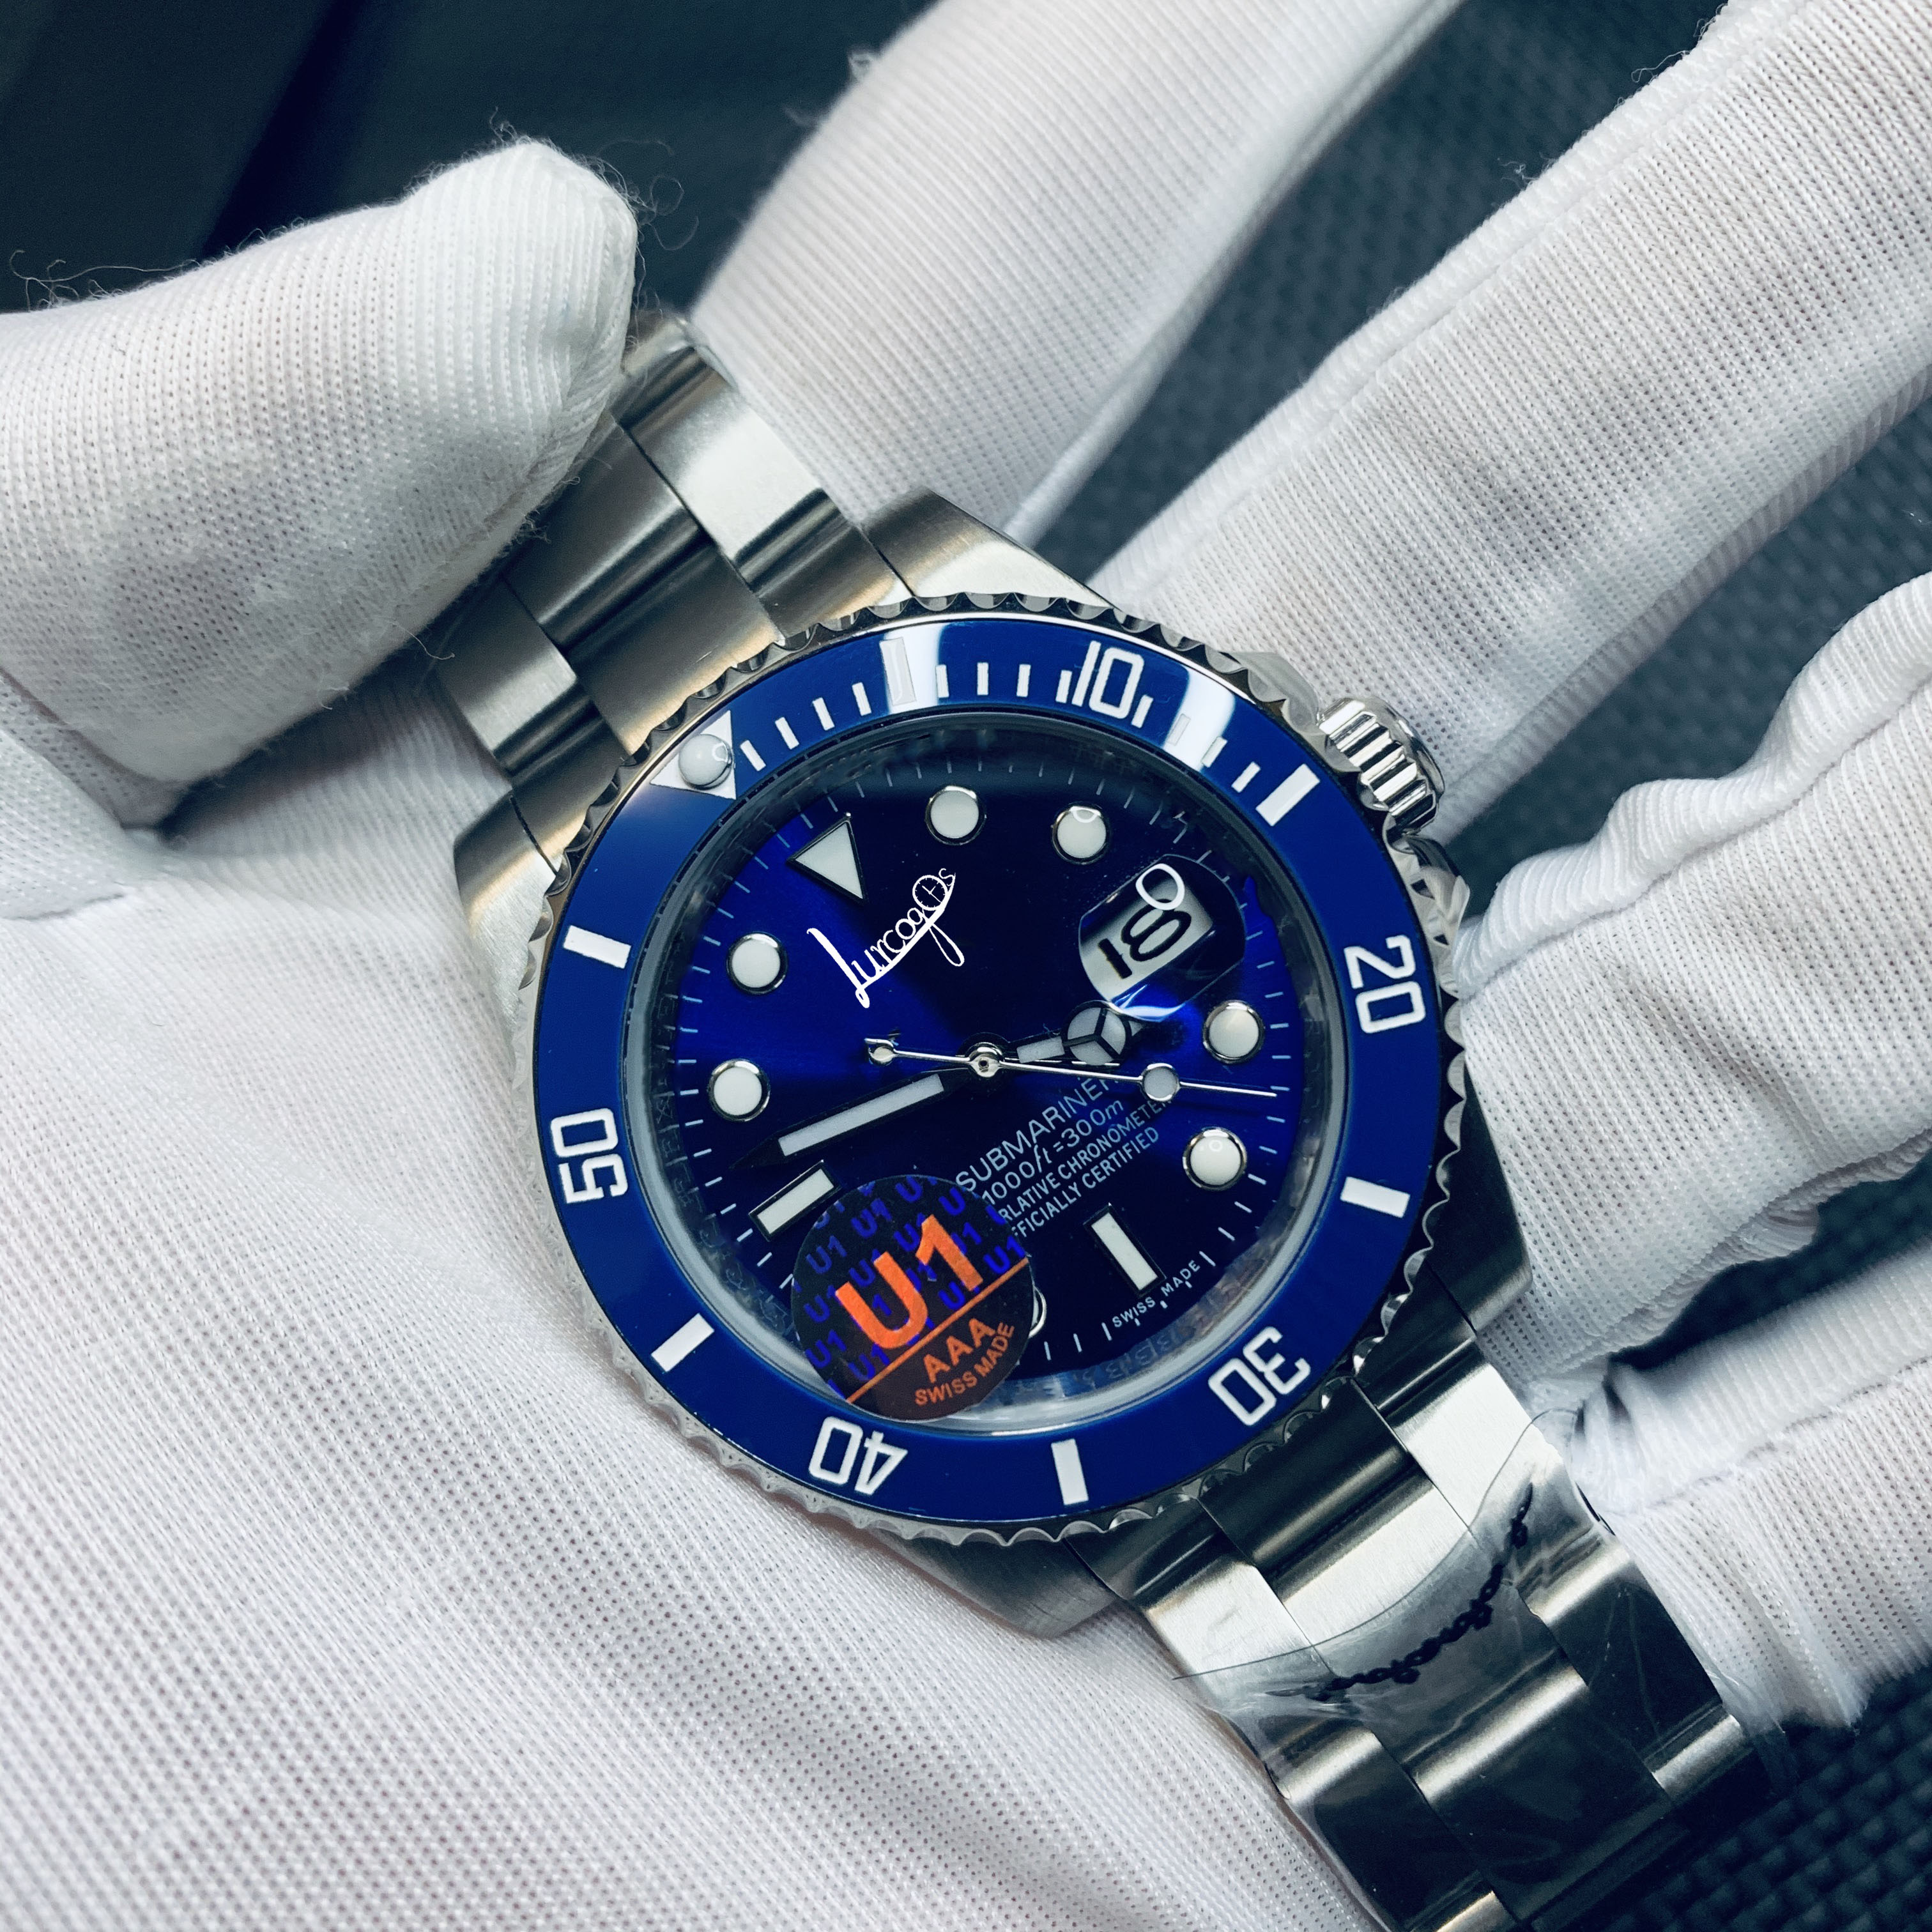 Limited sale SUB AAA watch ceramic bezel sapphire glass mechanical automatic movement blue dial sports jubilee strap